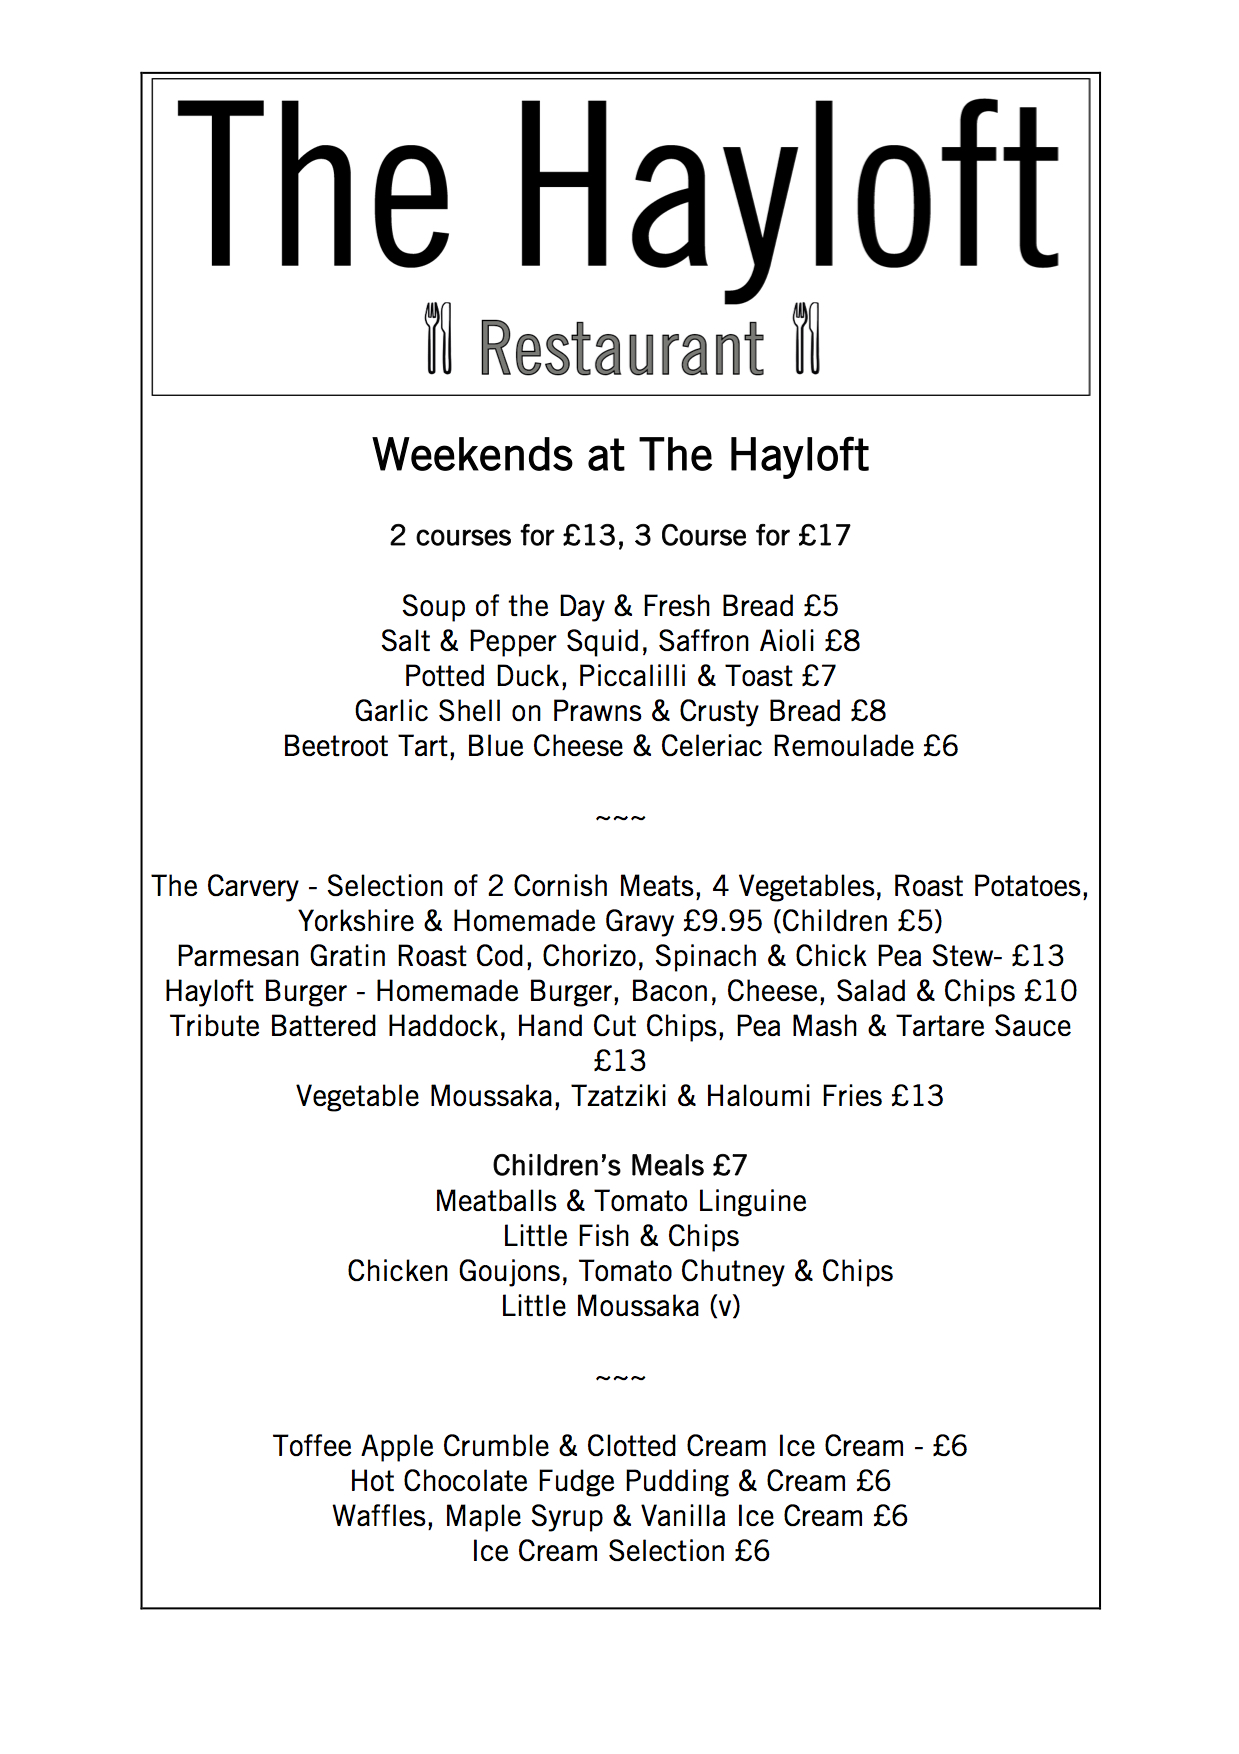 Weekends at The Hayloft